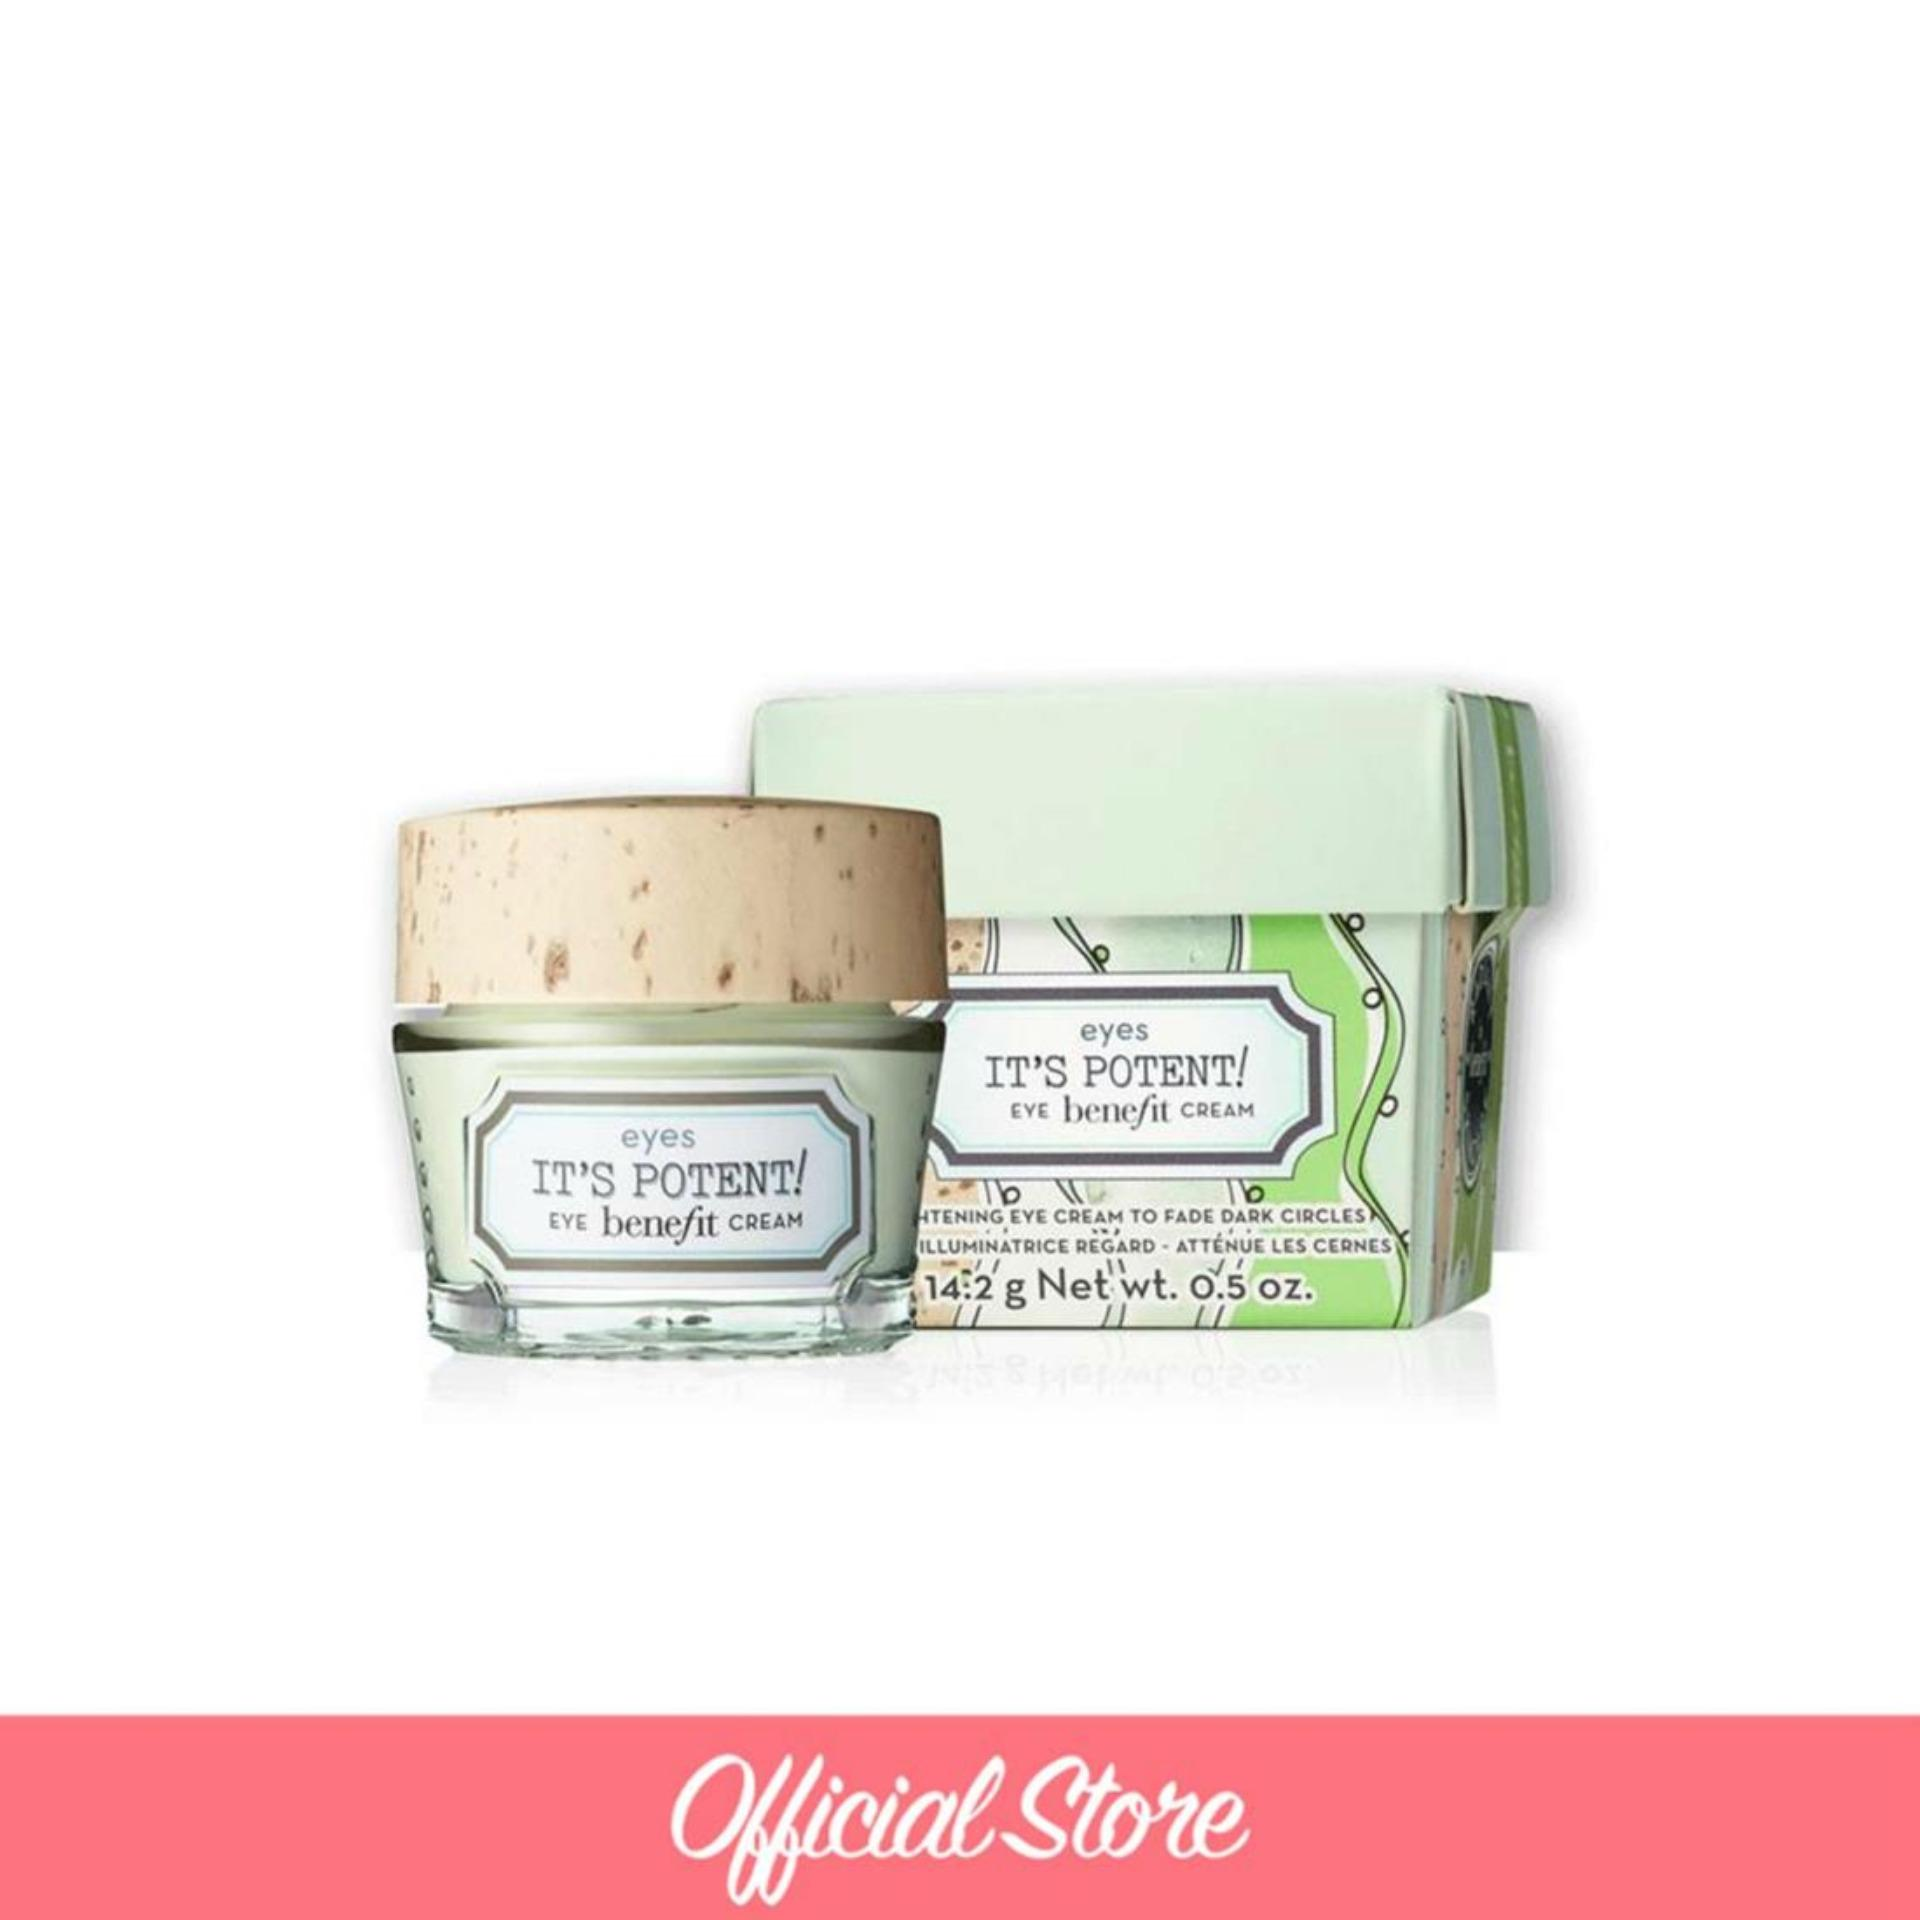 Benefit ItS Potent! Dark Circle Eye Cream Philippines